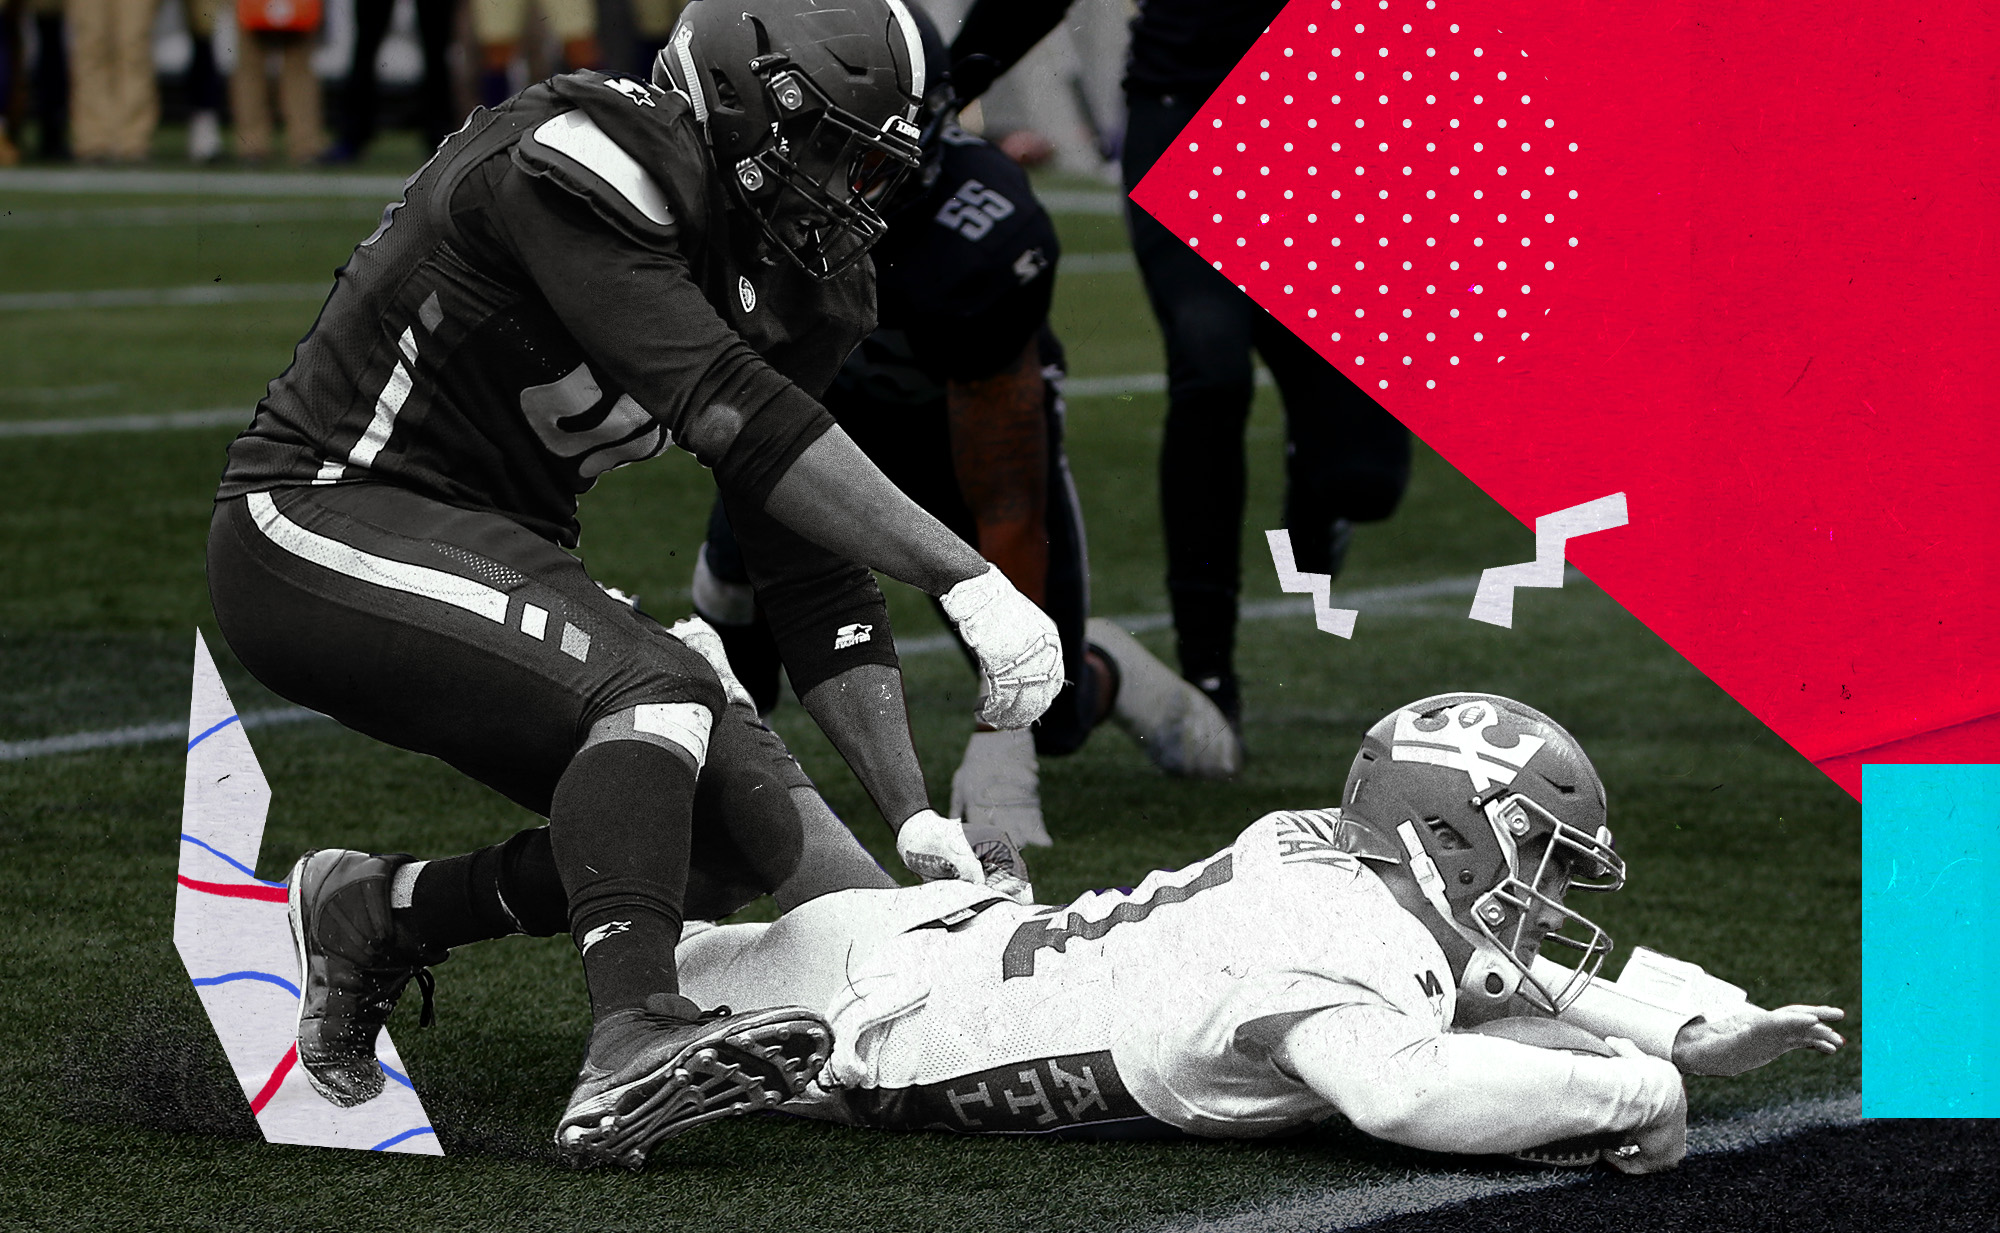 The AAF was exciting, fun, shabby, and is now unsurprisingly leaving us